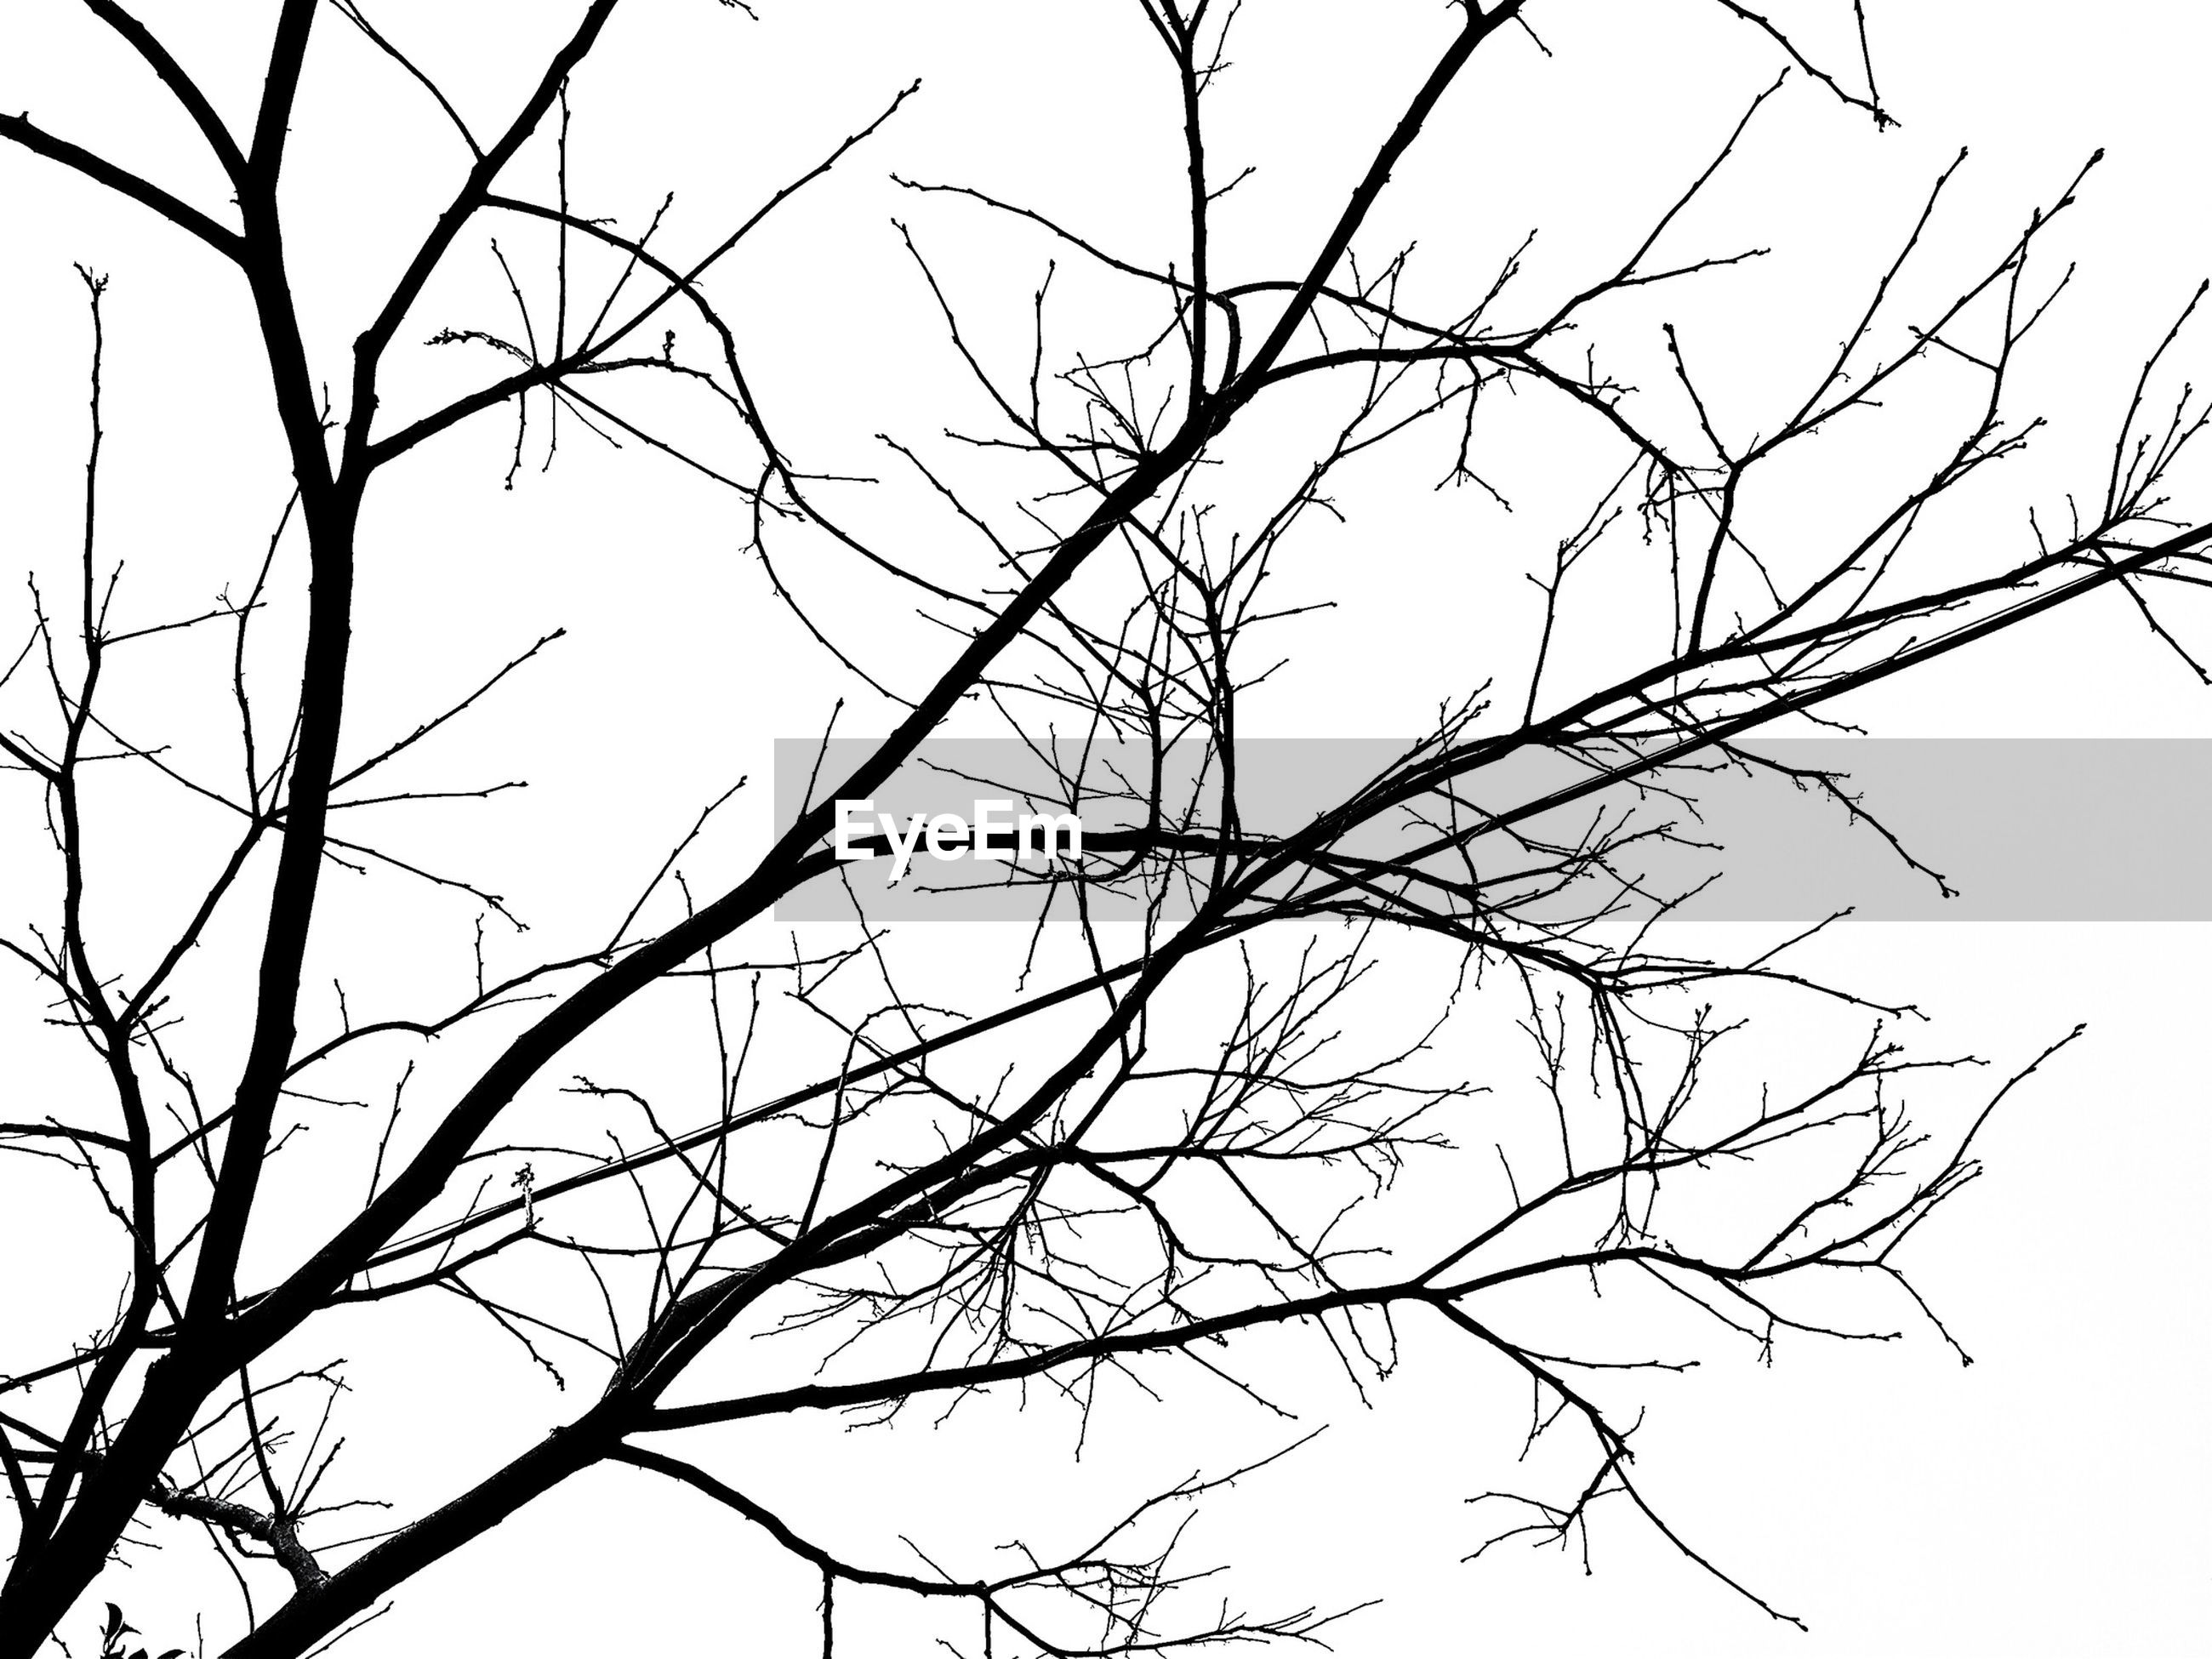 branch, bare tree, tree, low angle view, clear sky, tranquility, nature, beauty in nature, sky, scenics, outdoors, no people, twig, day, dead plant, tranquil scene, growth, silhouette, backgrounds, dried plant